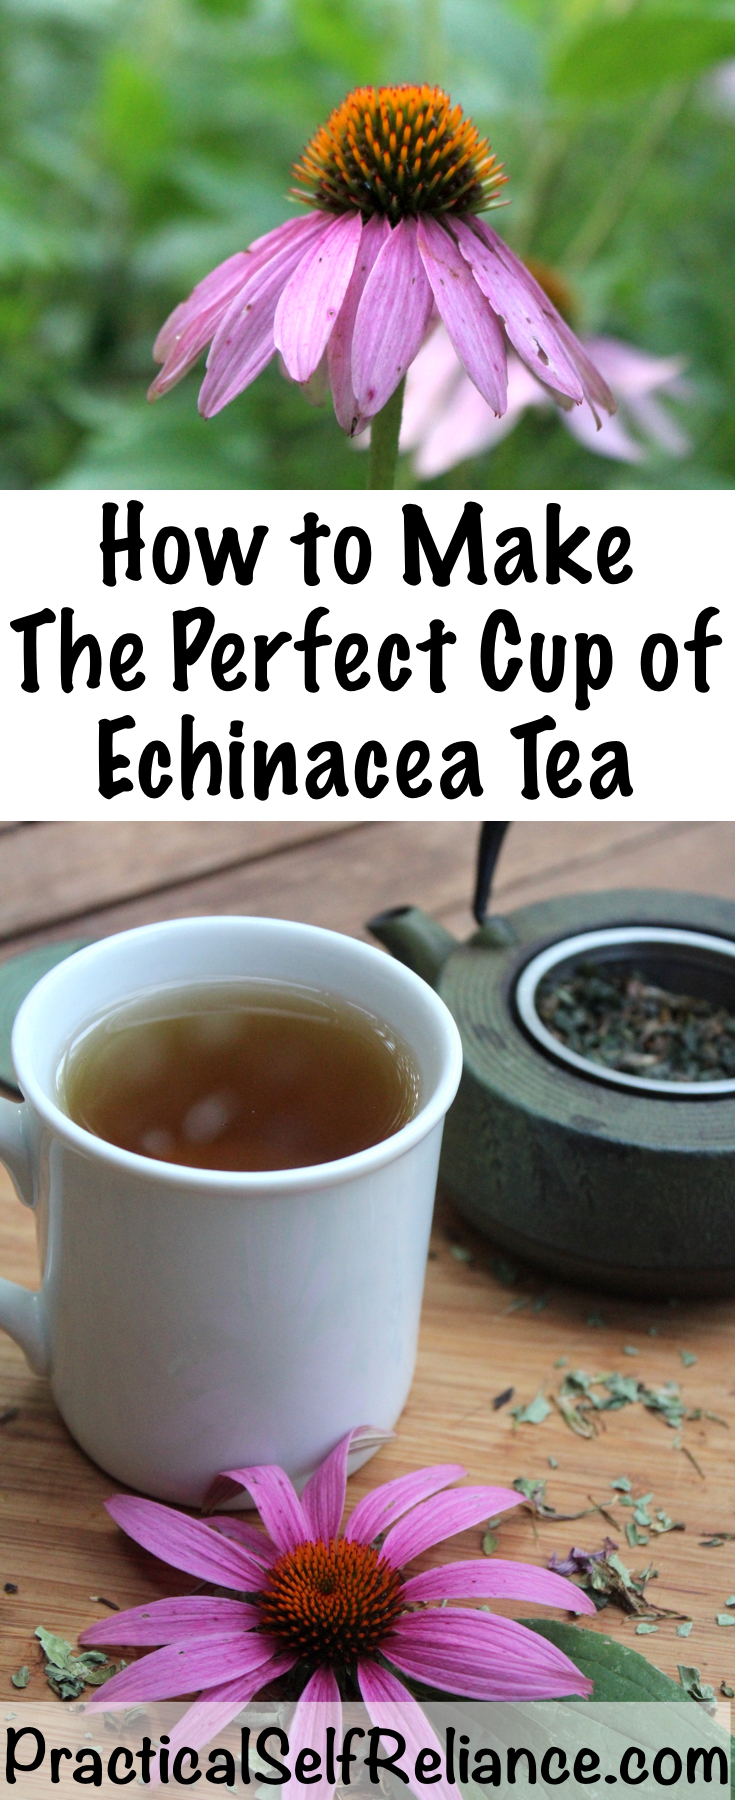 How to Make Echinacea Tea for Immune System Support